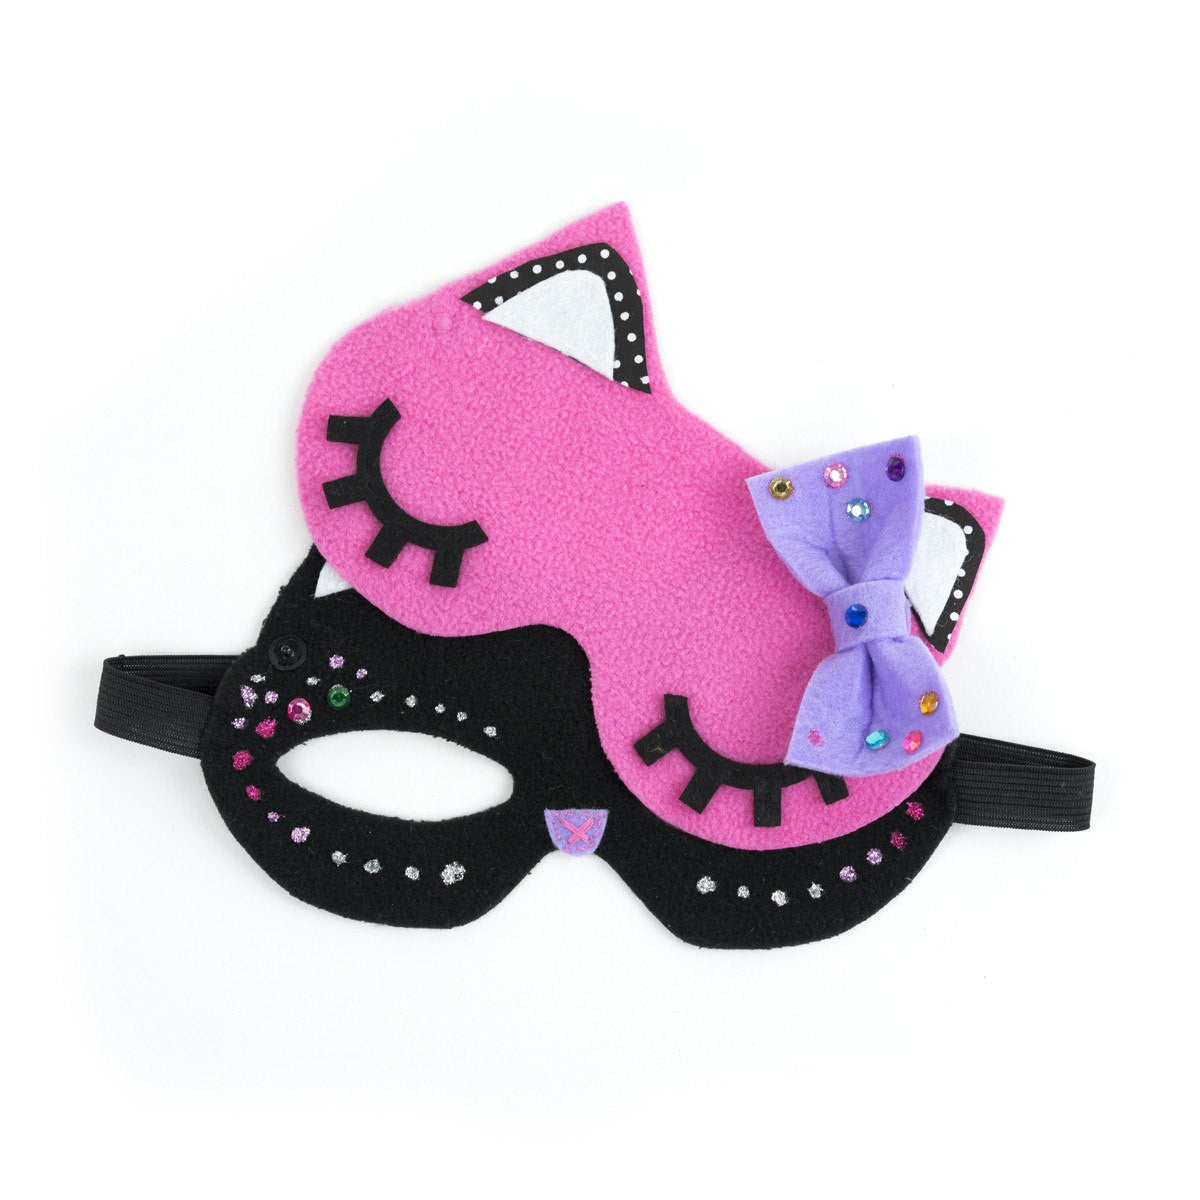 My Purrrrfect Eye Mask